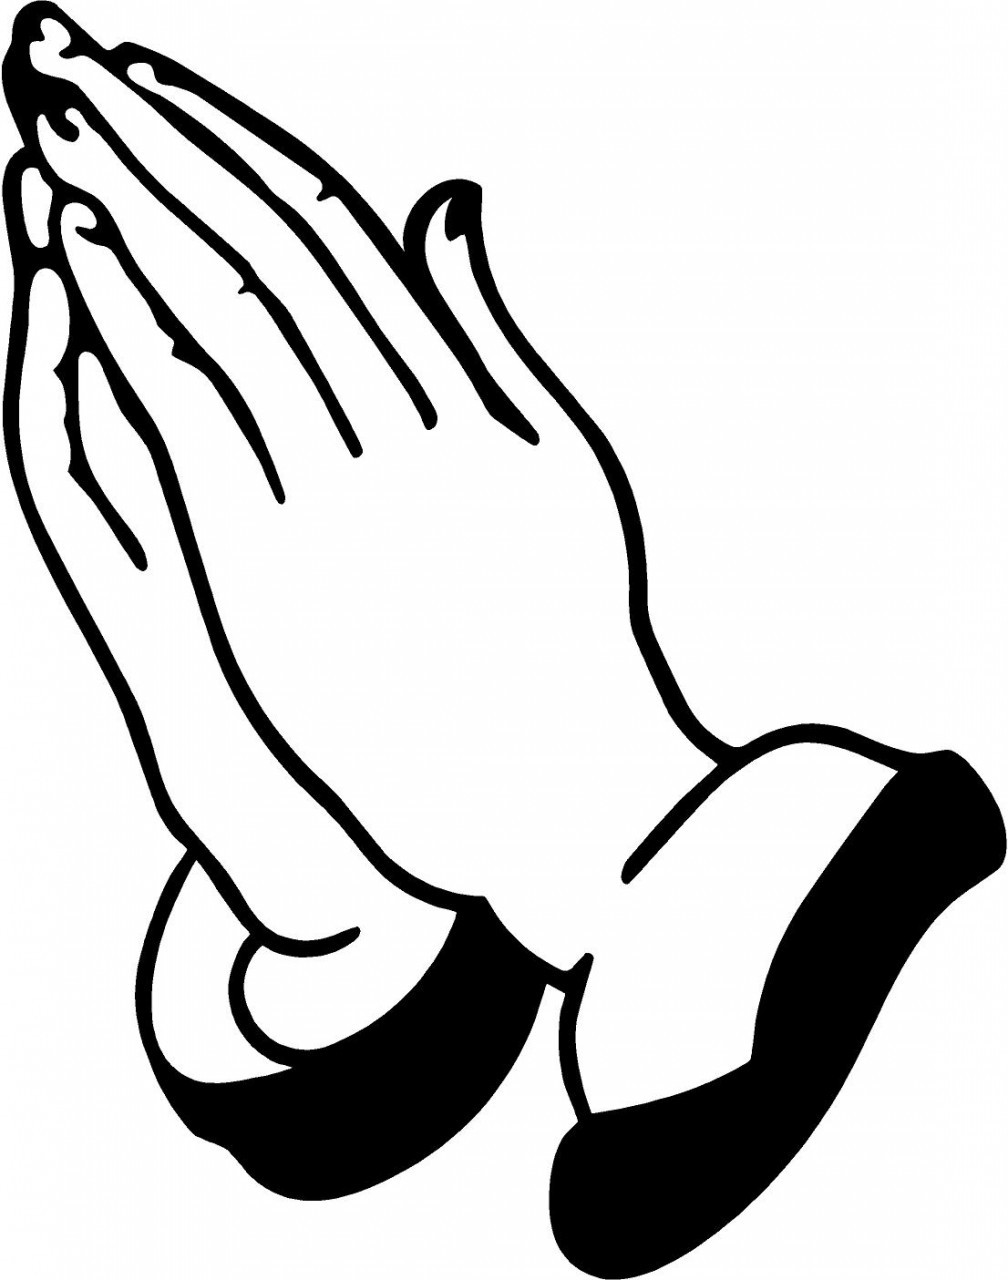 Prayer Hands Clipart Clipart .-Prayer Hands Clipart Clipart .-4